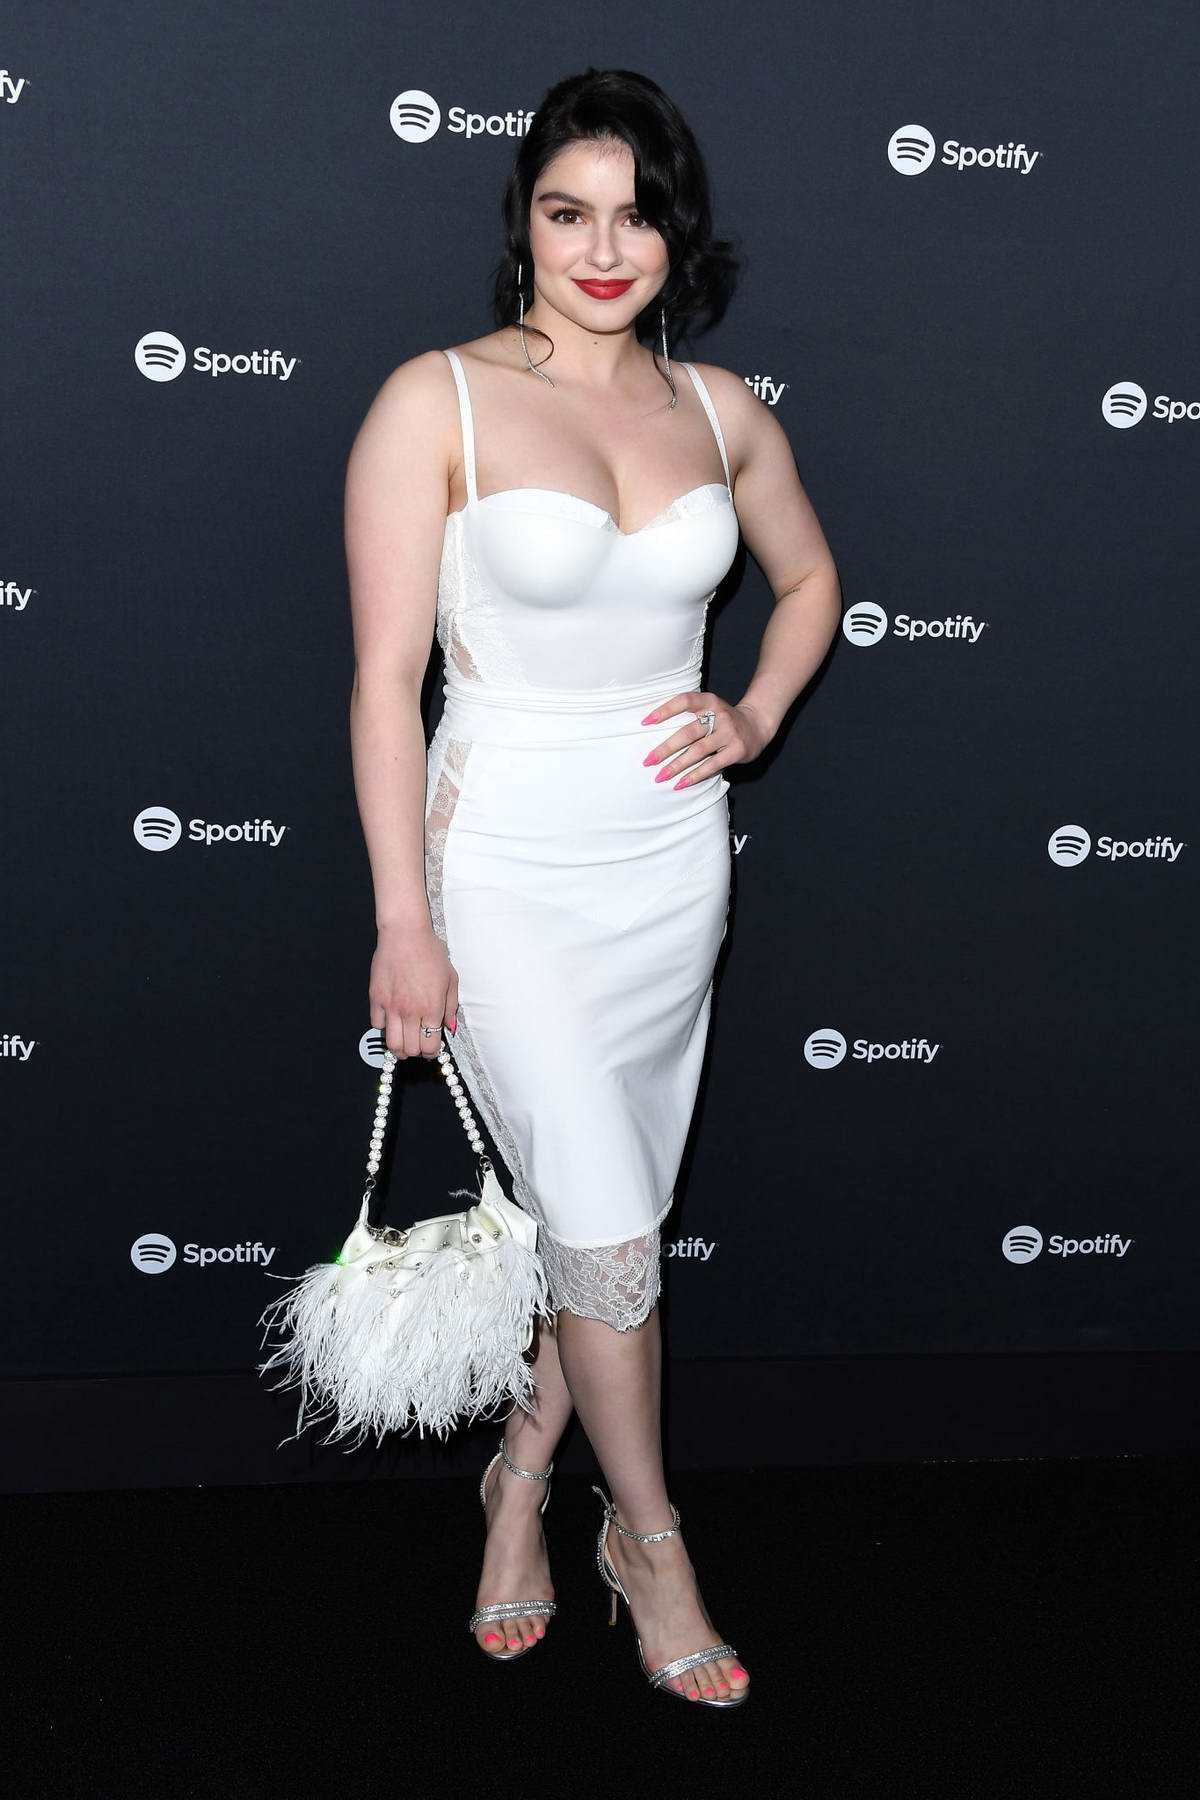 Ariel Winter attends the Spotify 'Best New Artist' Party 2020 in Los Angeles